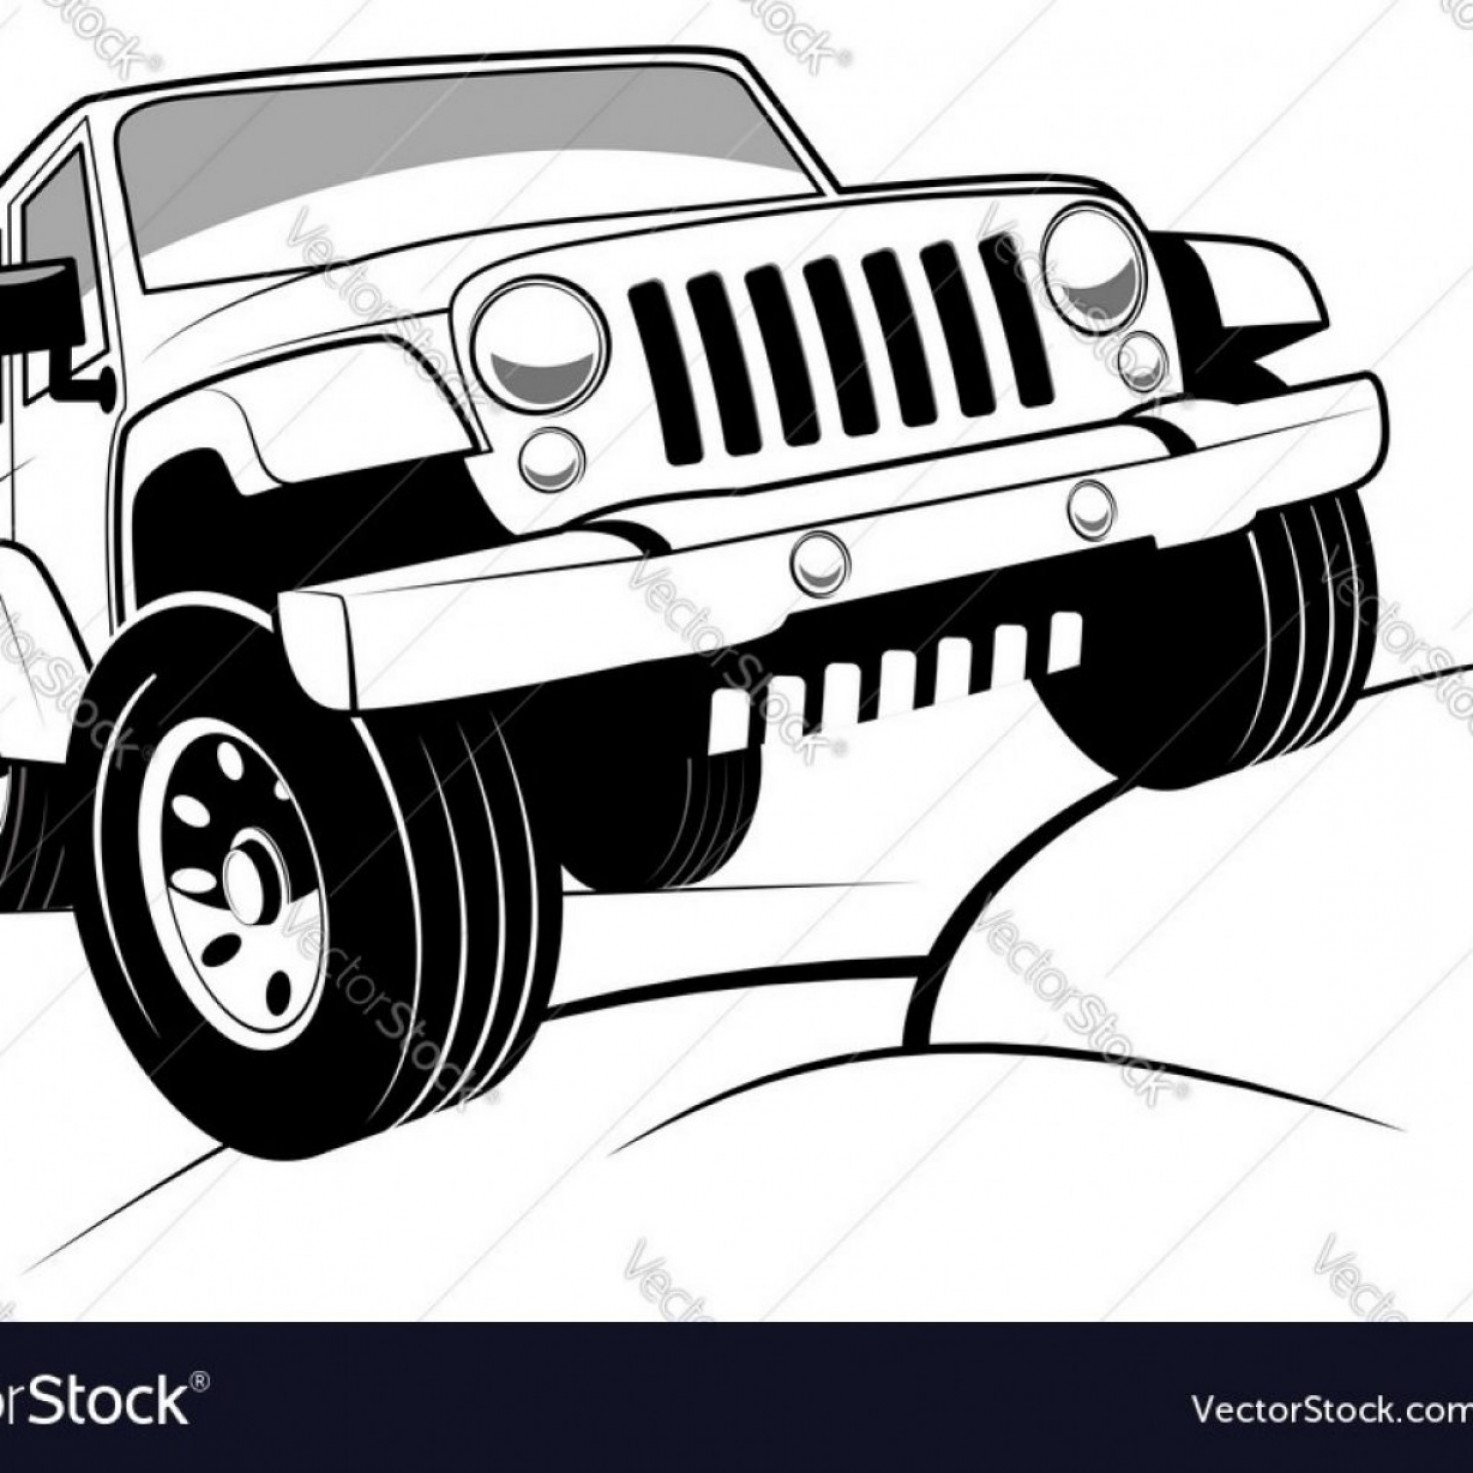 2014 Jeep Wrangler Vector: Monochrome Detailed Cartoon Off Road Jeep Vector Image Intended For Jeep Wrangler Vector